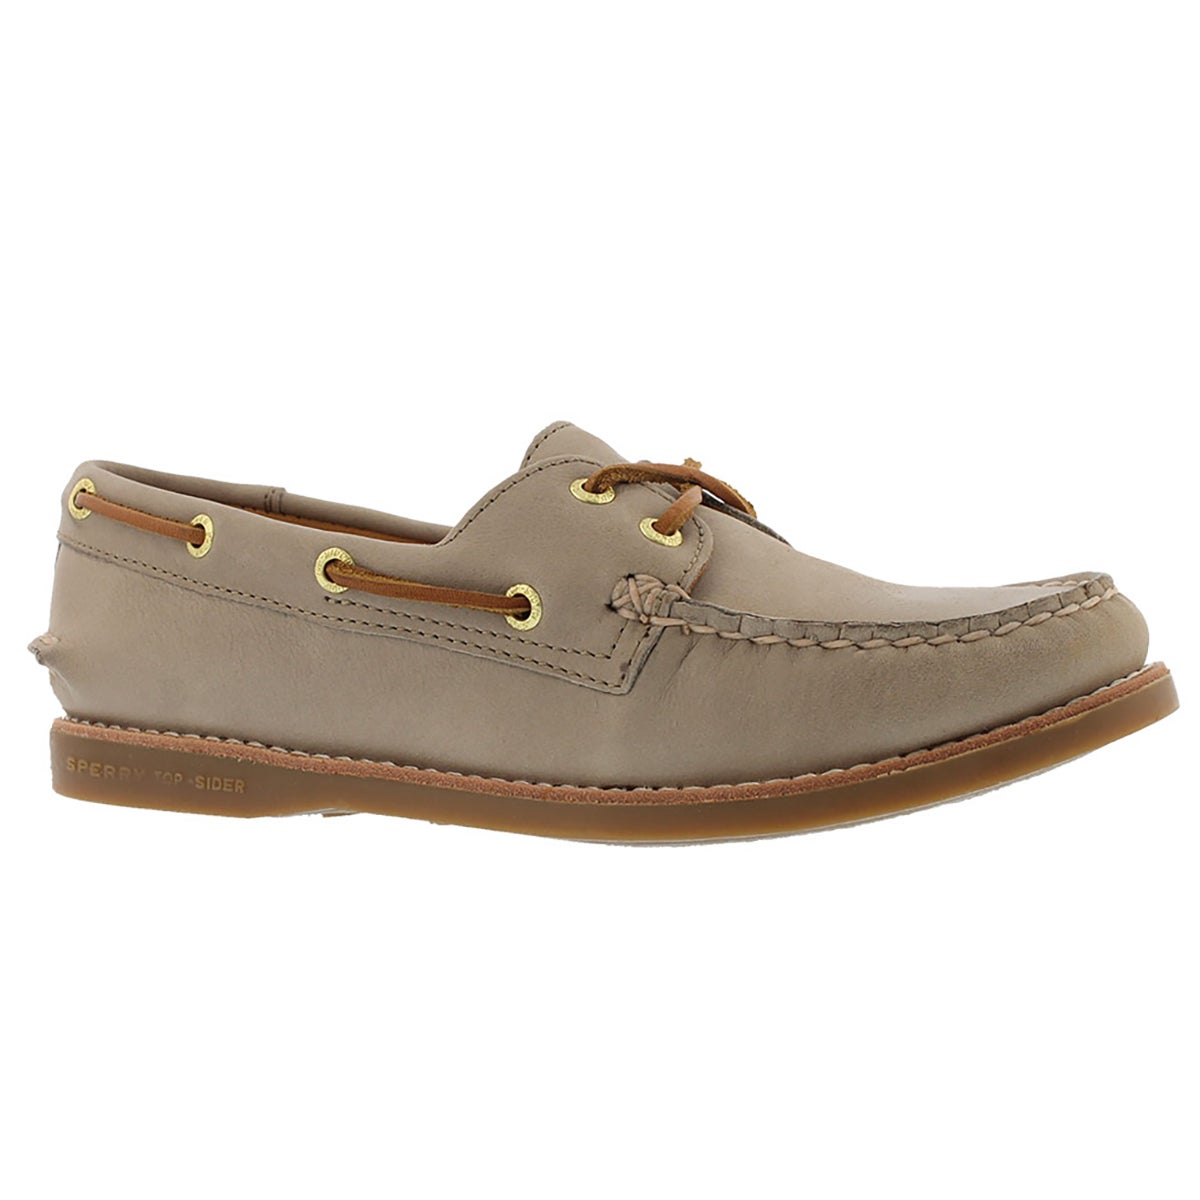 Women's GOLD CUP A/O grey boat shoes